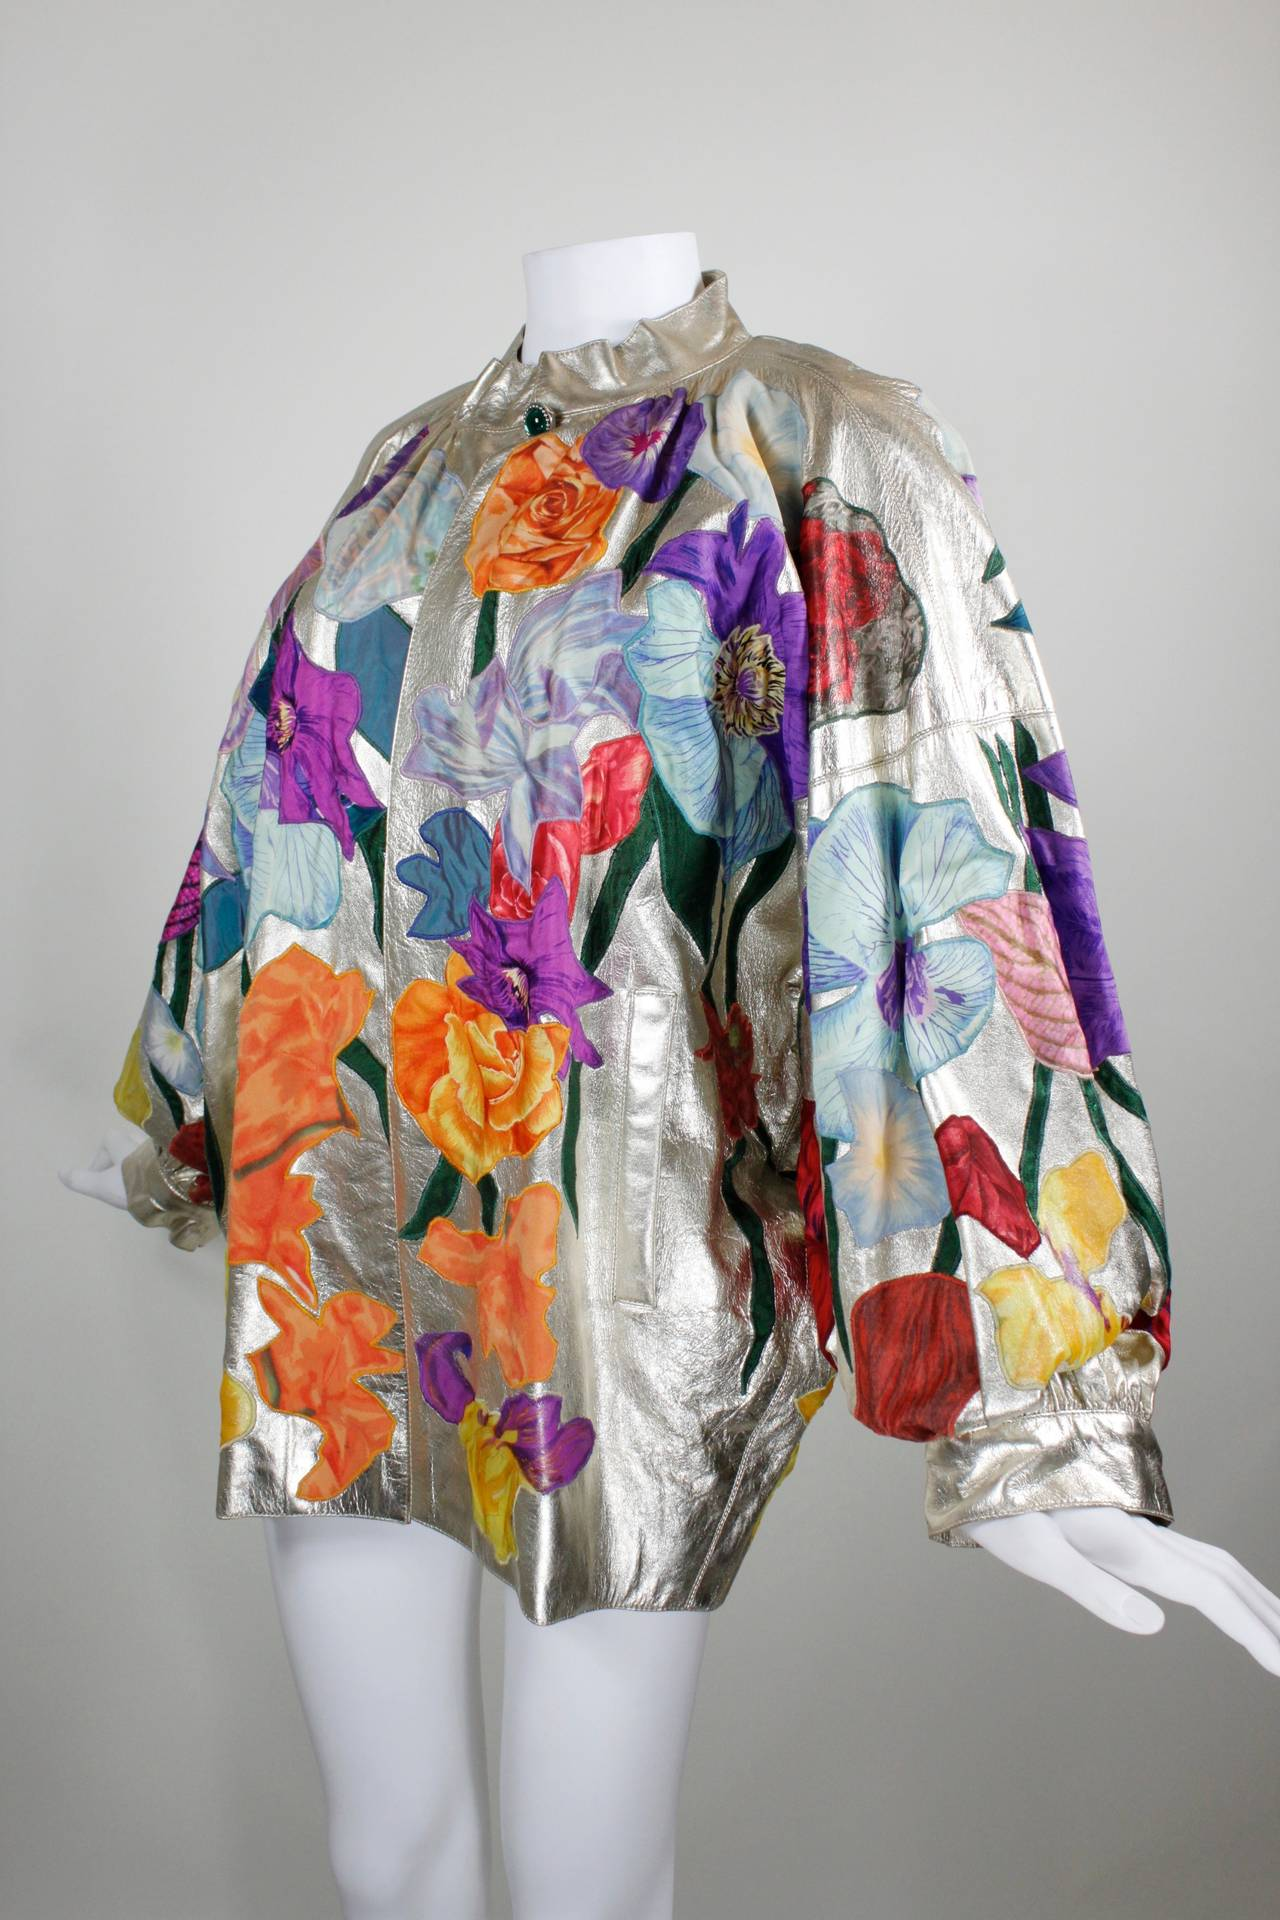 YSL Couture Silver Leather with Rainbow Floral Appliqué Jacket 7